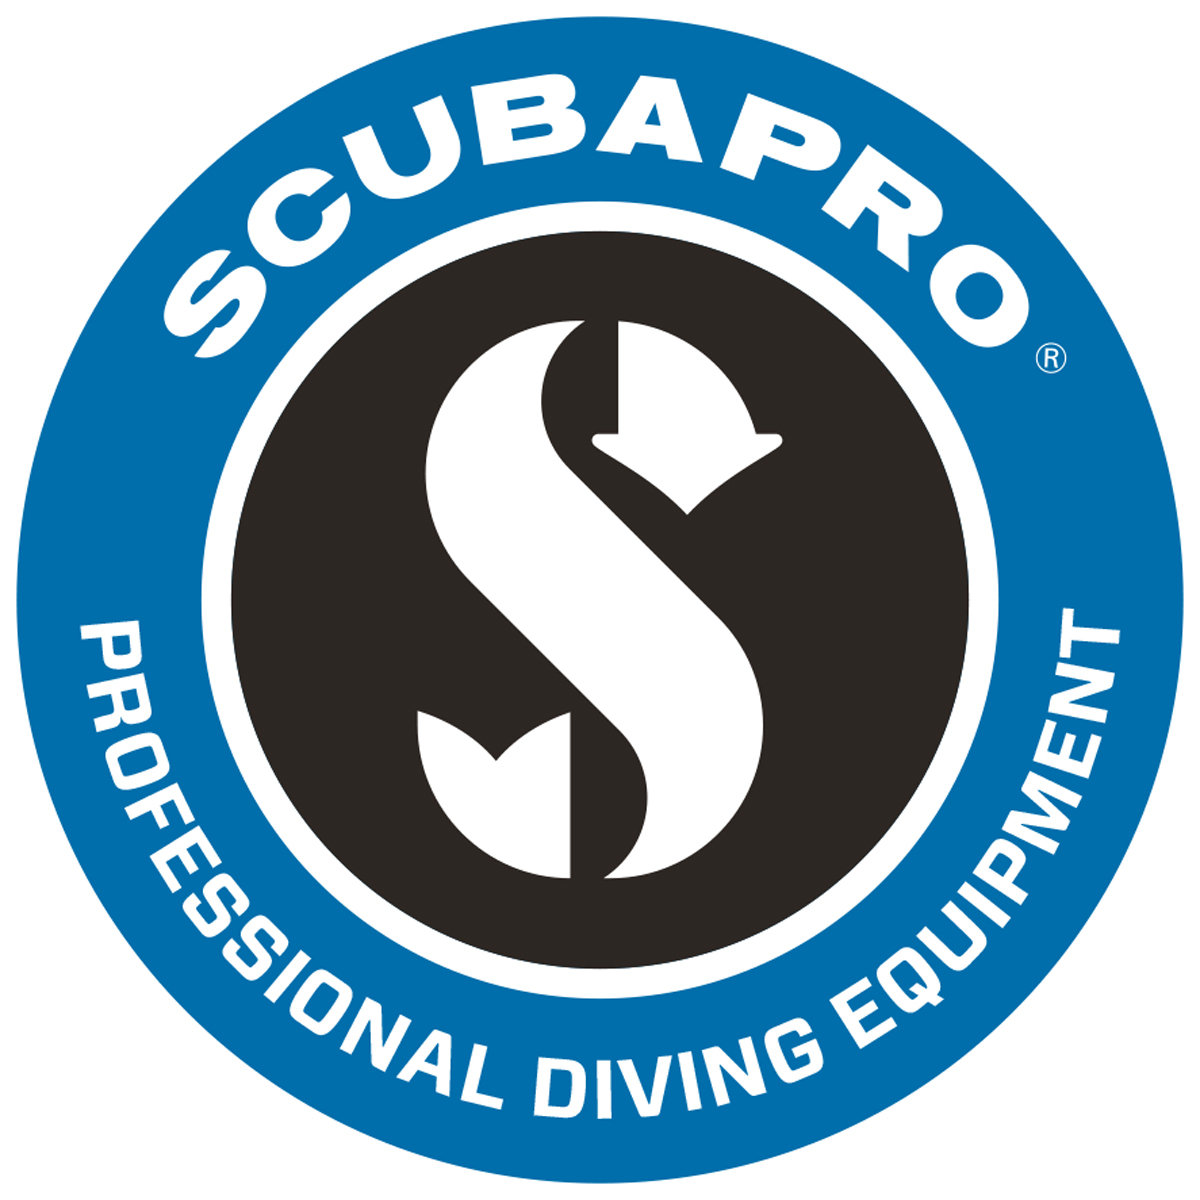 Scubapro Professional Diving Equipment